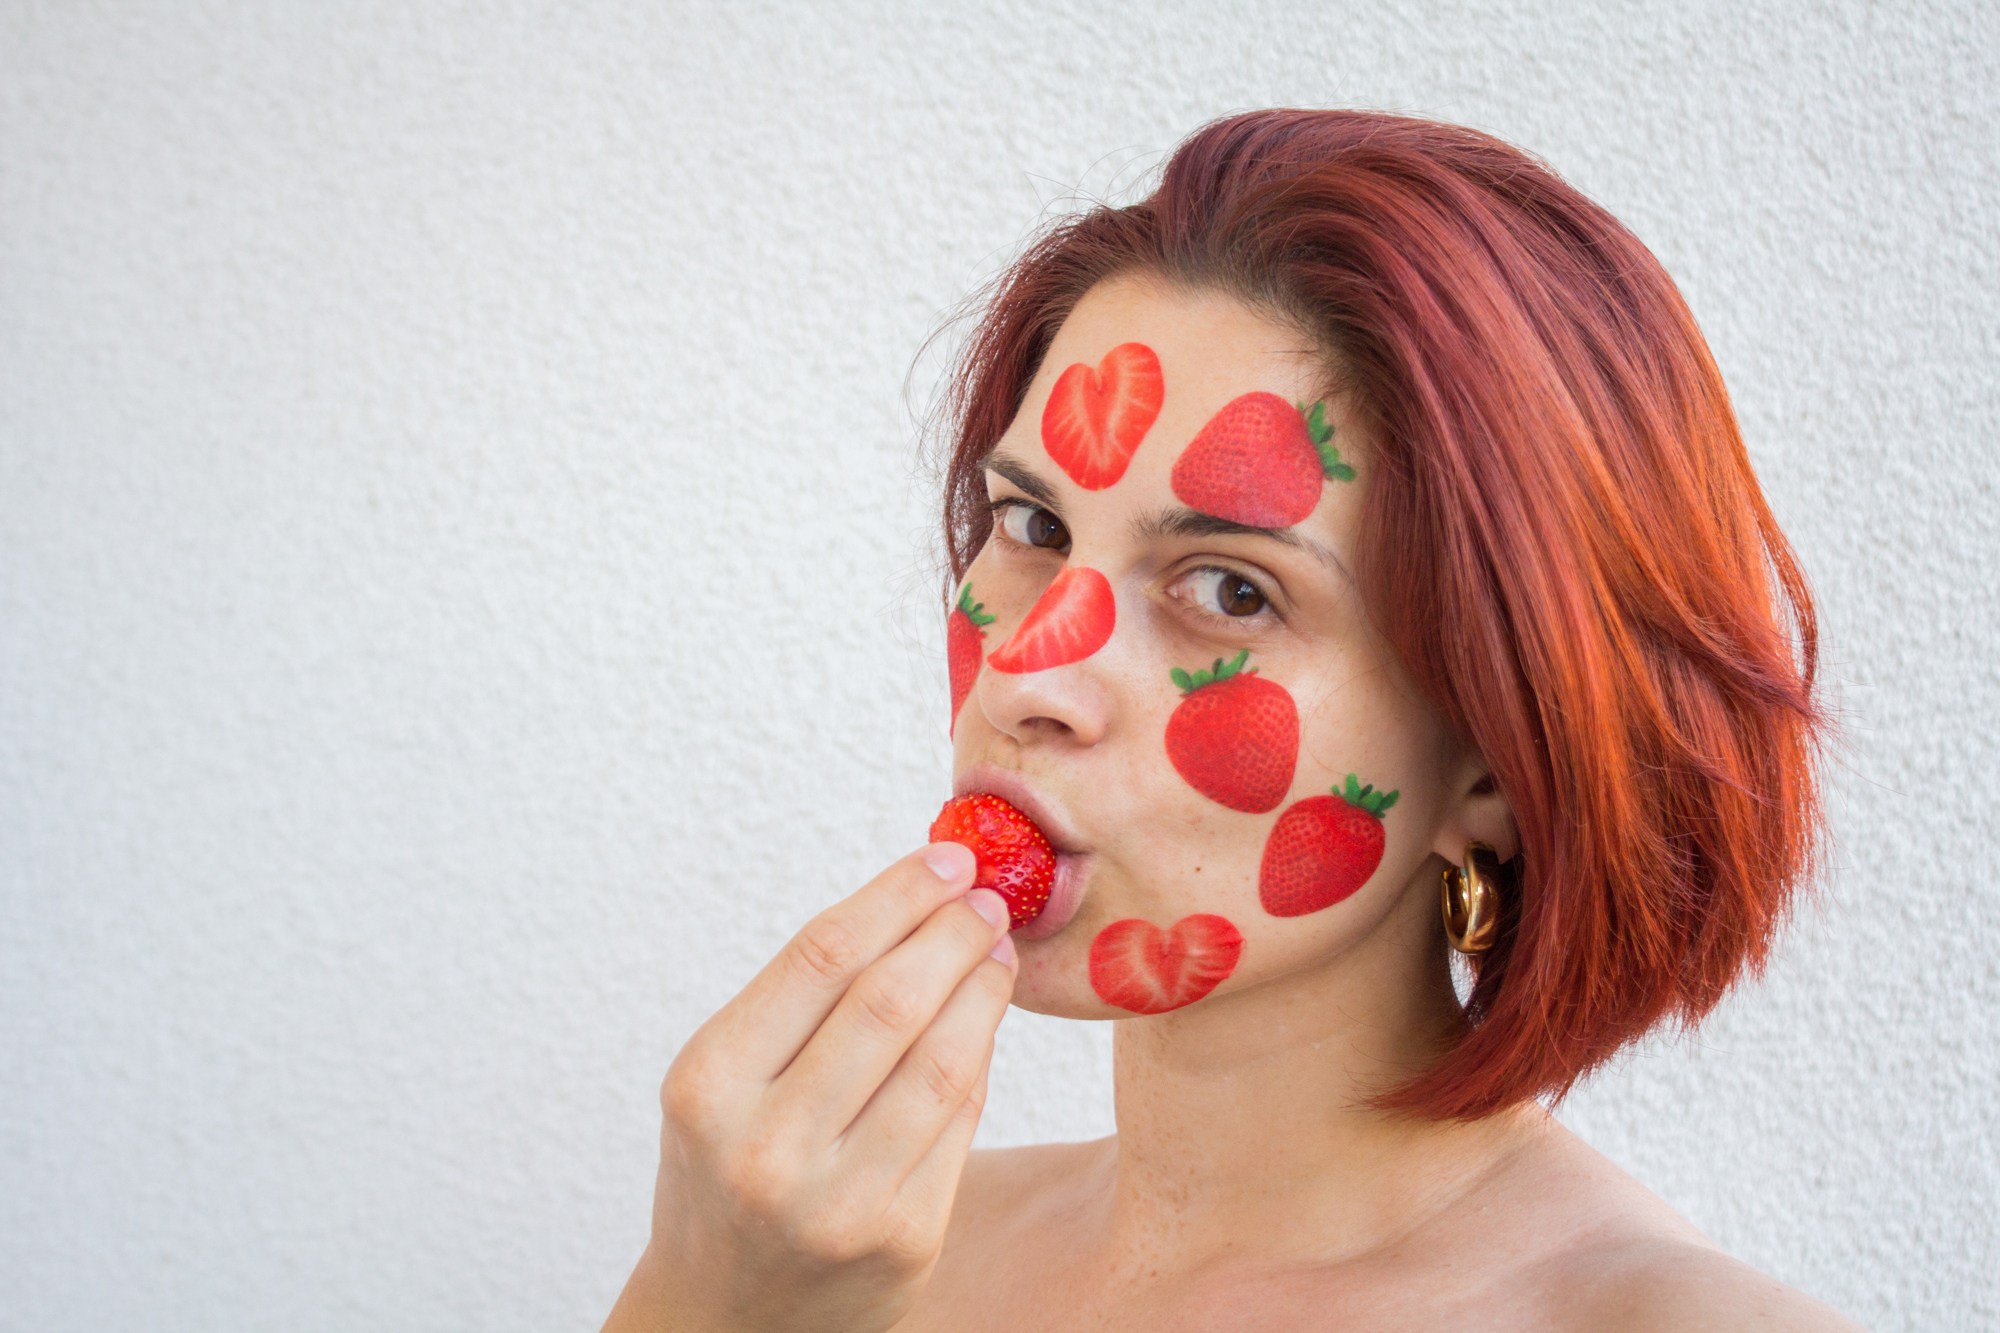 kocostar strawberry mask review celebrenbeauty